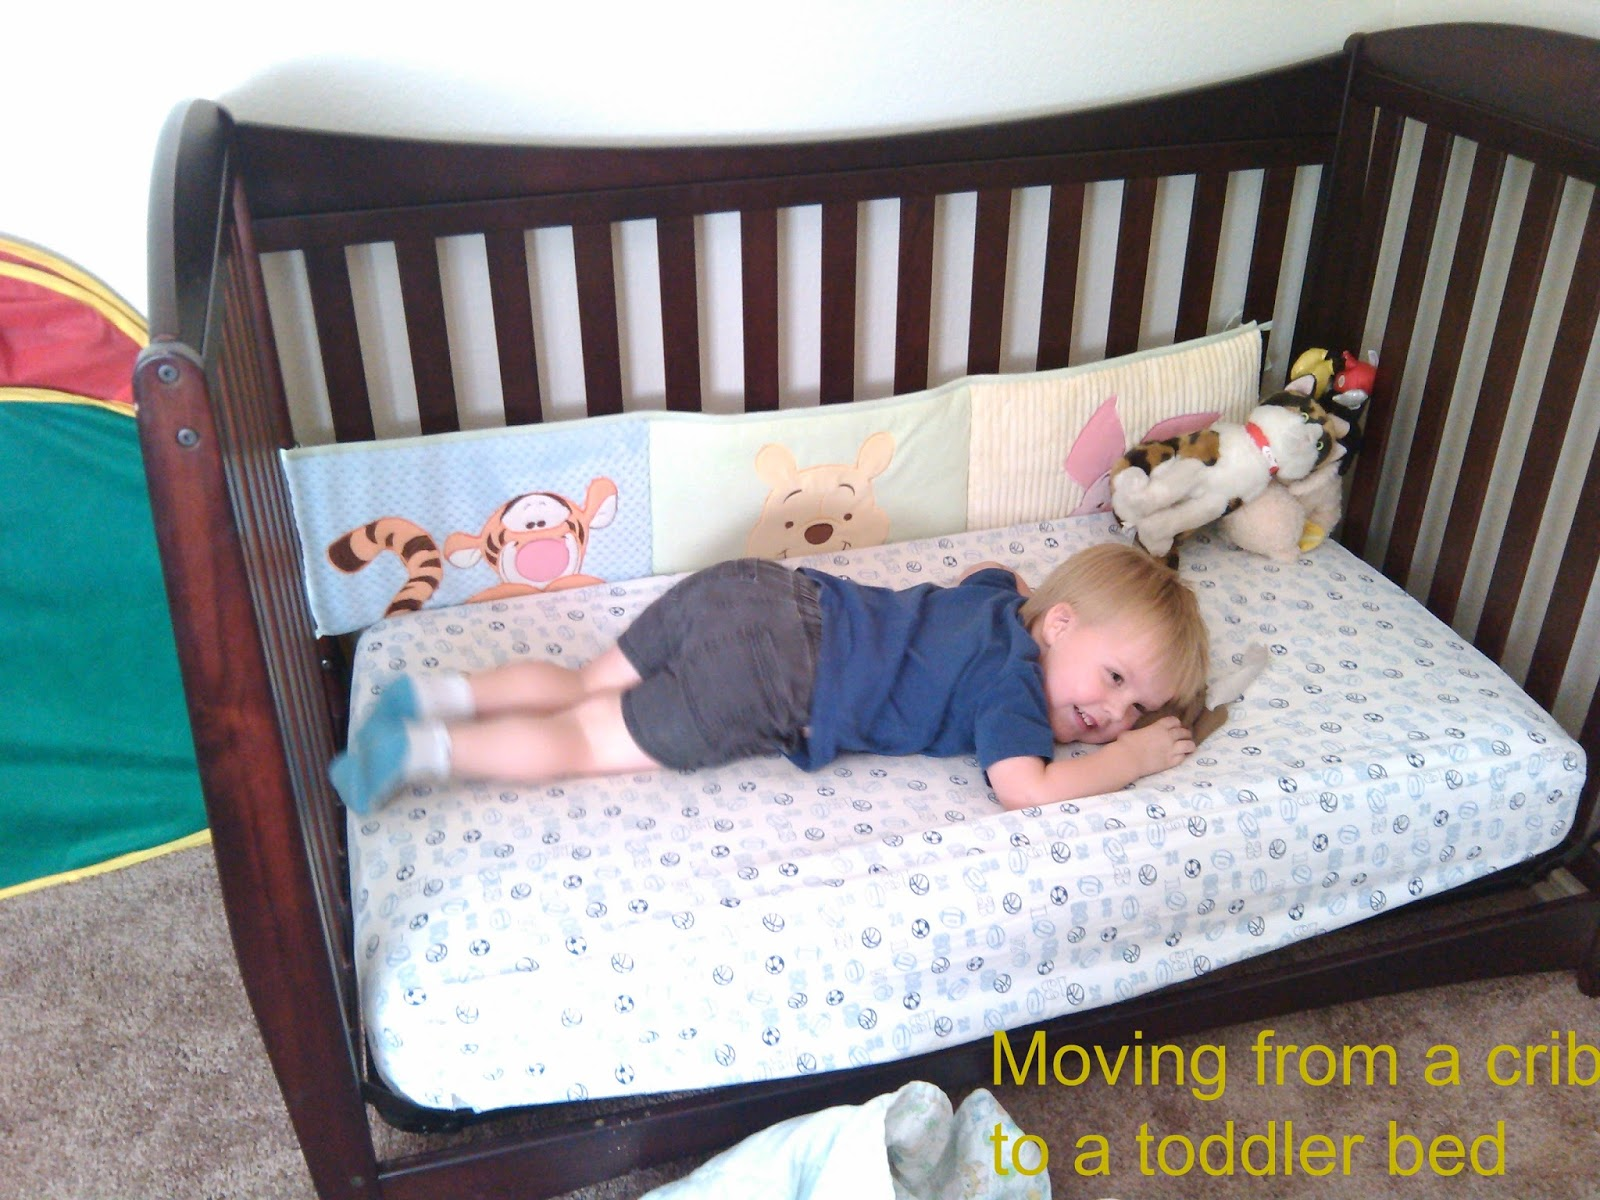 How Big Is A Toddler Bed.Transitions Moving From A Crib To A Toddler Bed Team